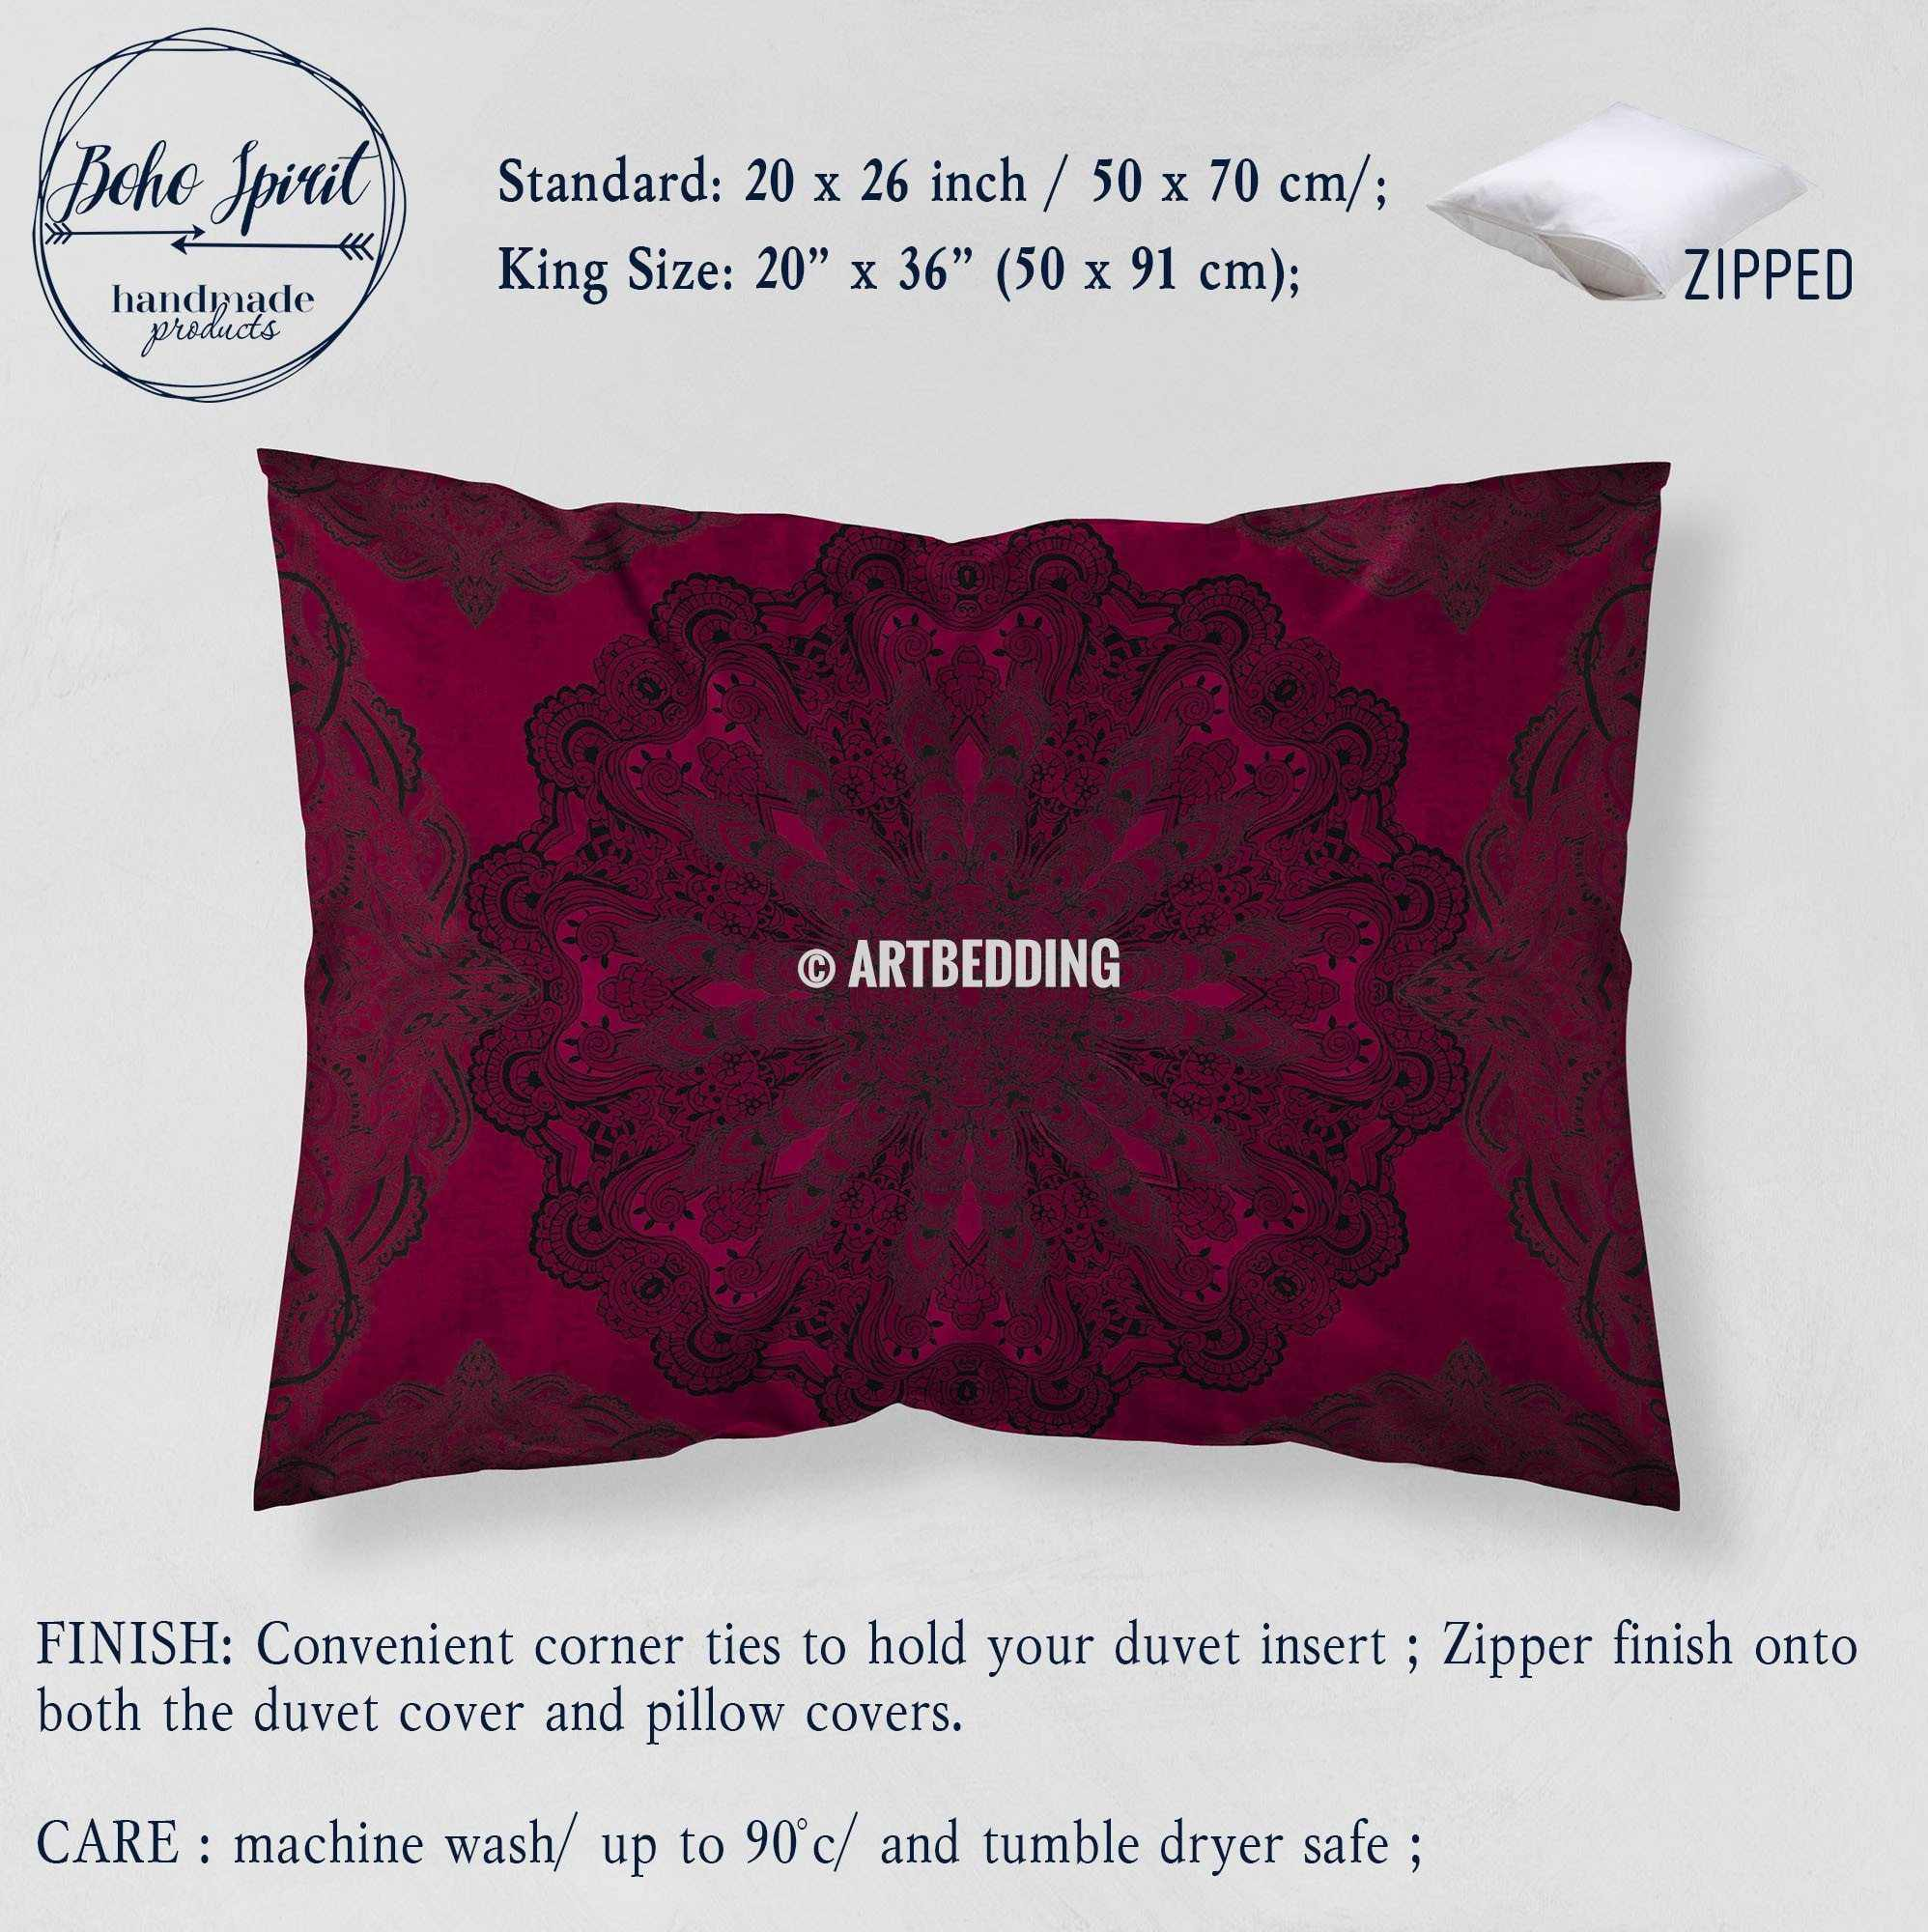 bedspread for sale comforter burgundy colored chenille bedspreads